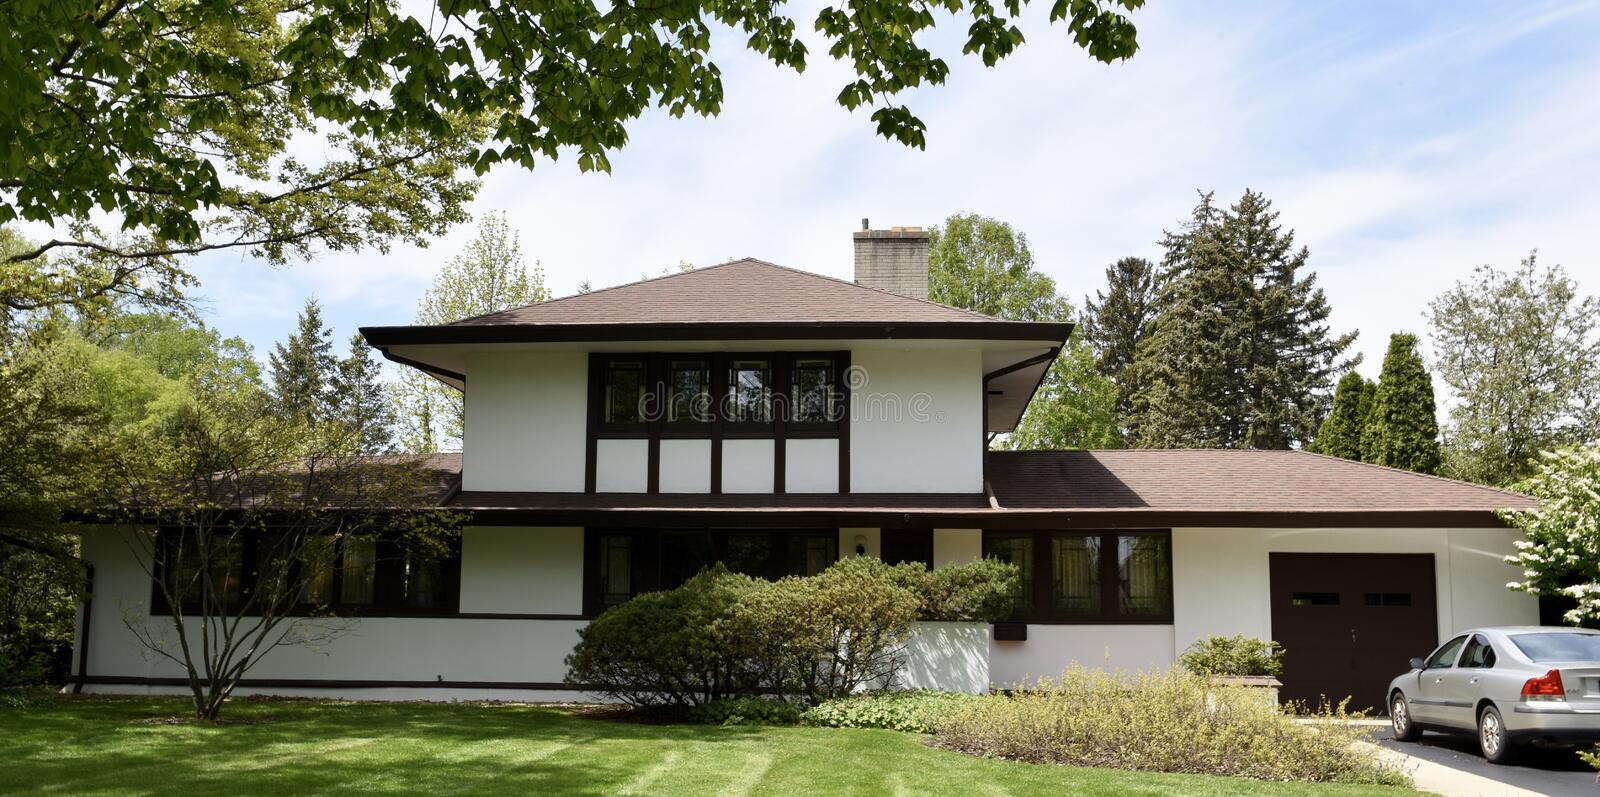 Sloane House. This is a Spring picture of the William B. Sloane House located in Elmhurst, Illinois in DuPage County. This house was designed by Walter Burley stock photos